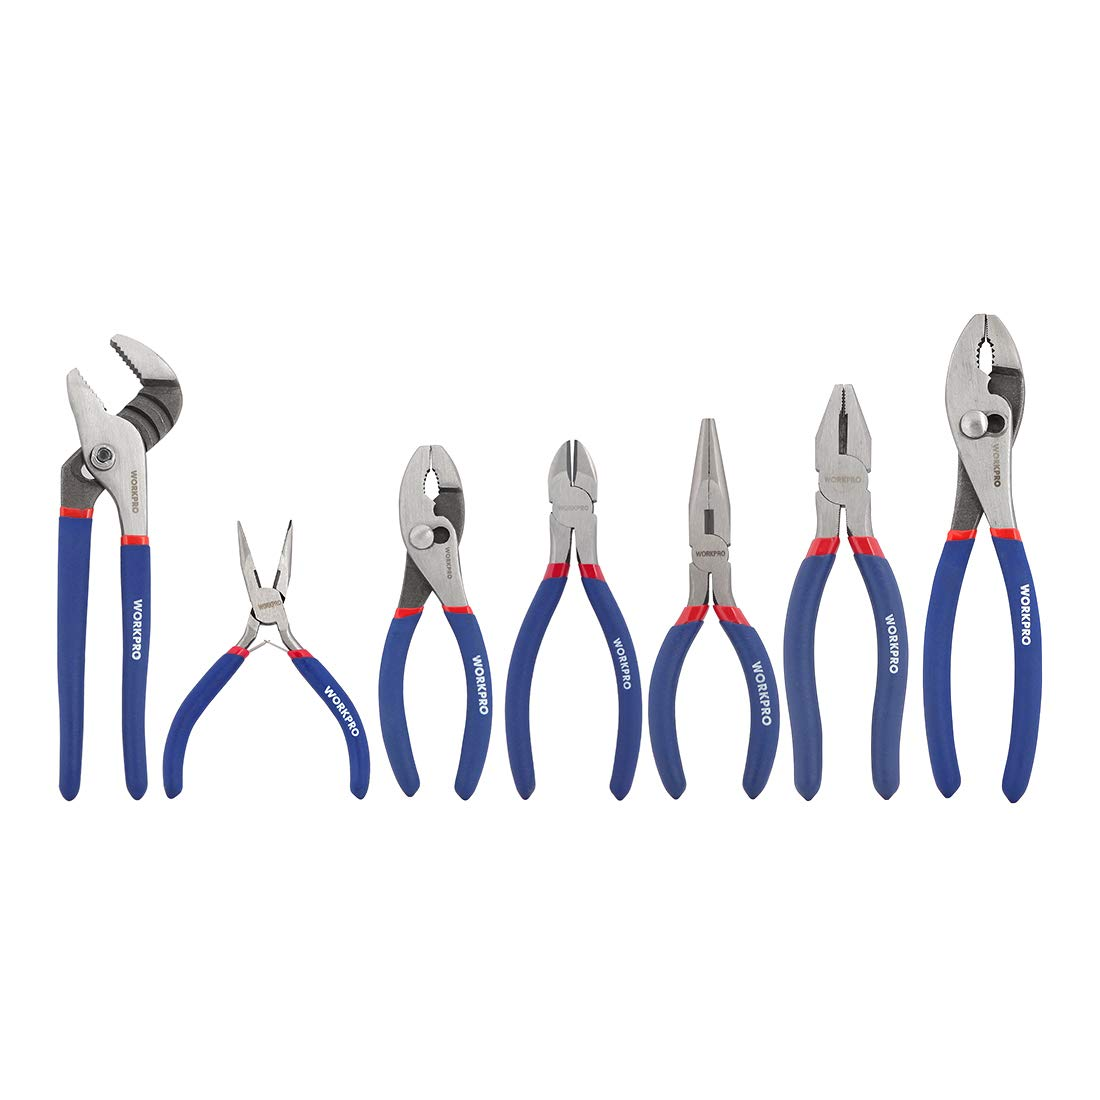 WORKPRO 7-piece Pliers Set (8-inch Groove Joint Pliers, 6-inch Long Nose, 6-inch Slip Joint, 4-1/2 Inch Long Nose, 6-inch Diagonal, 7-inch Linesman, 8-inch Slip Joint) for DIY & Home Use by WORKPRO